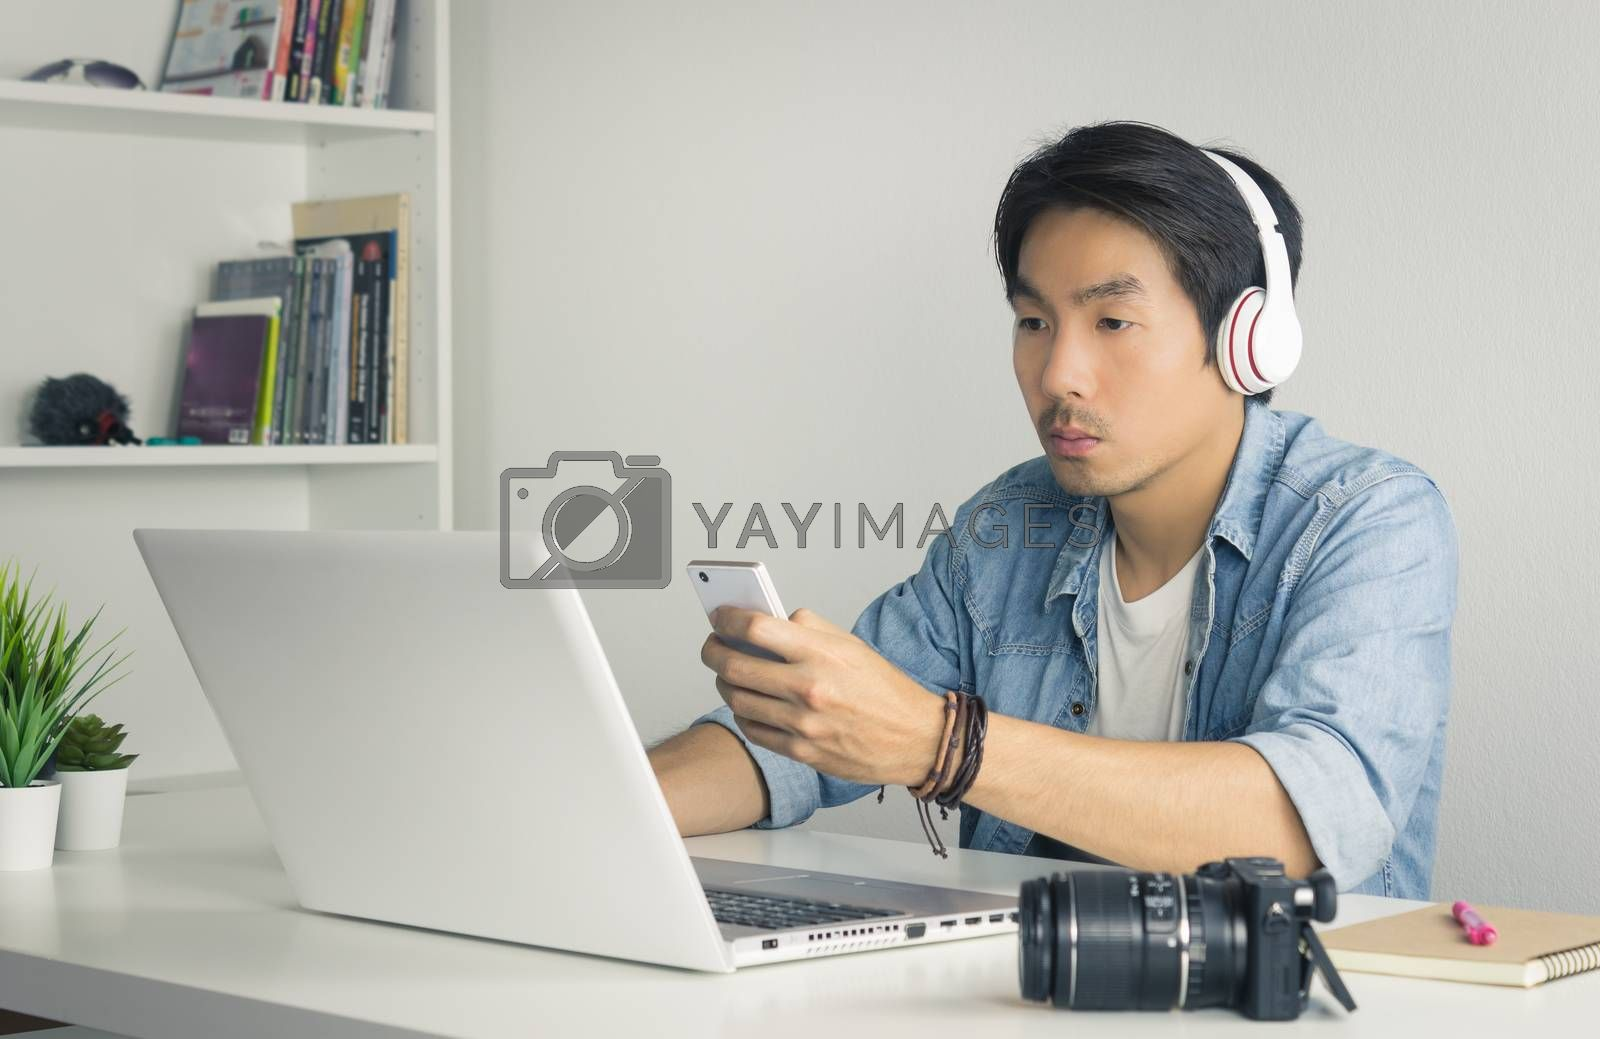 Asian Freelance Videographer in Denim or Jeans Shirt Checking Multimedia File by Smartphone with Laptop in Home Office. Freelance Videographer working with technology